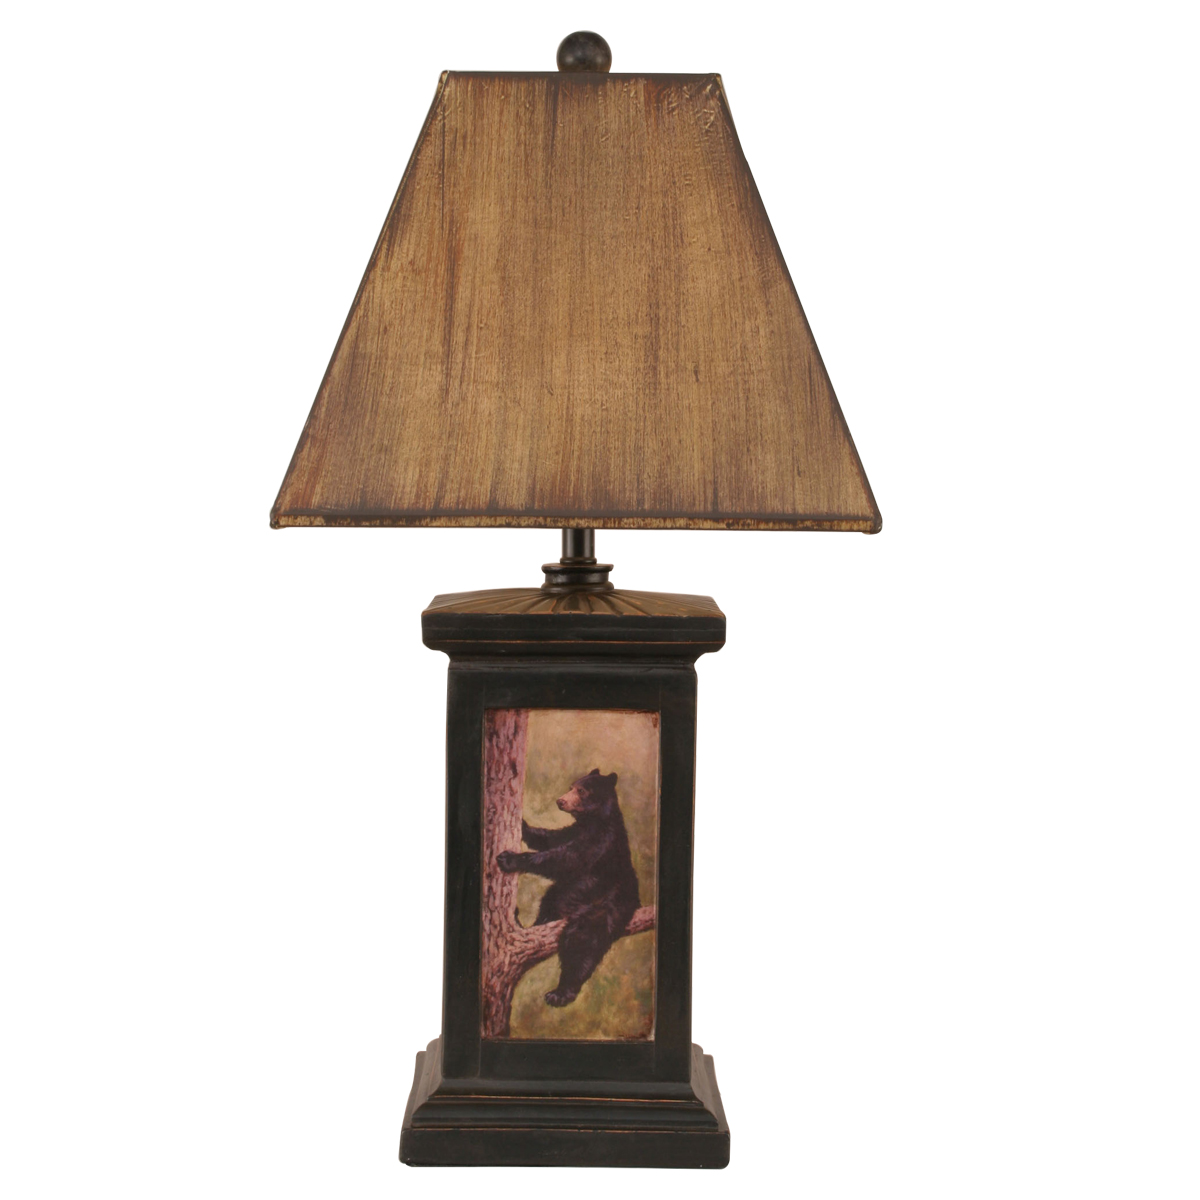 Black bear table lamps lighting compare prices at nextag black forest decor relaxing in the tree bear scene table geotapseo Choice Image